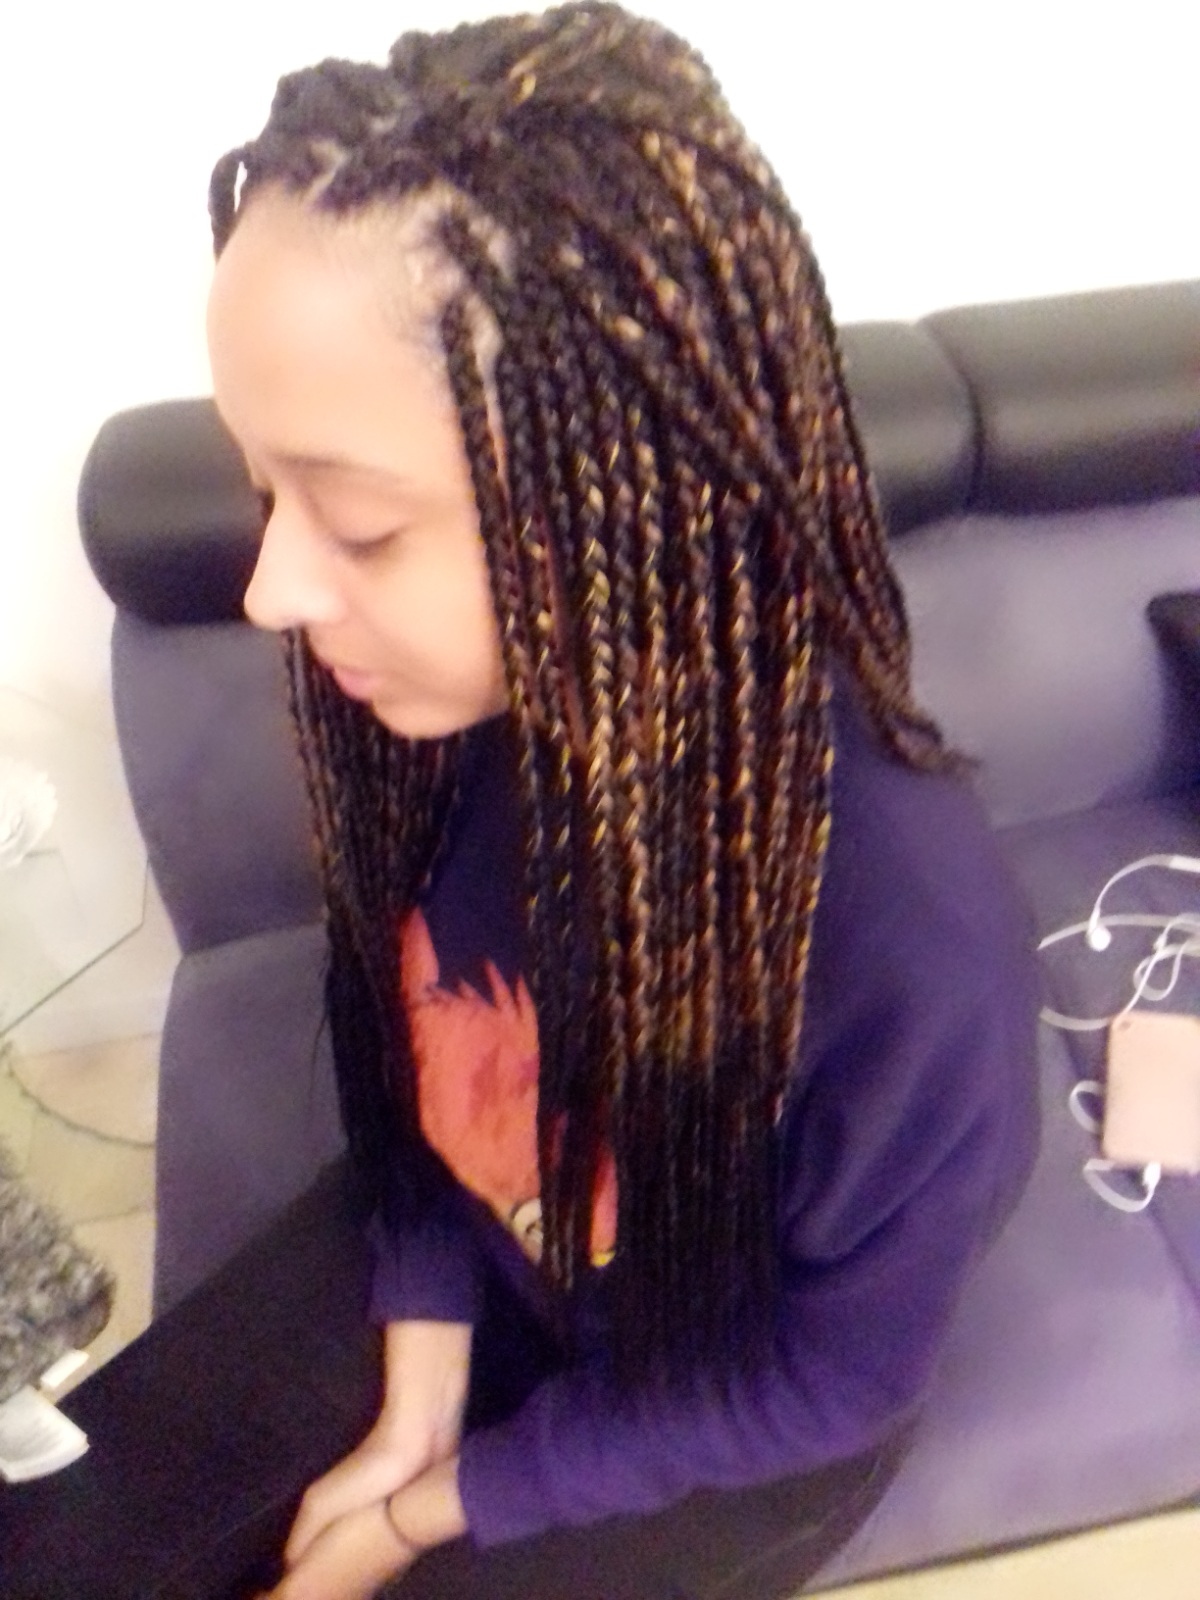 salon de coiffure afro tresse tresses box braids crochet braids vanilles tissages paris 75 77 78 91 92 93 94 95 RPLGDDAC